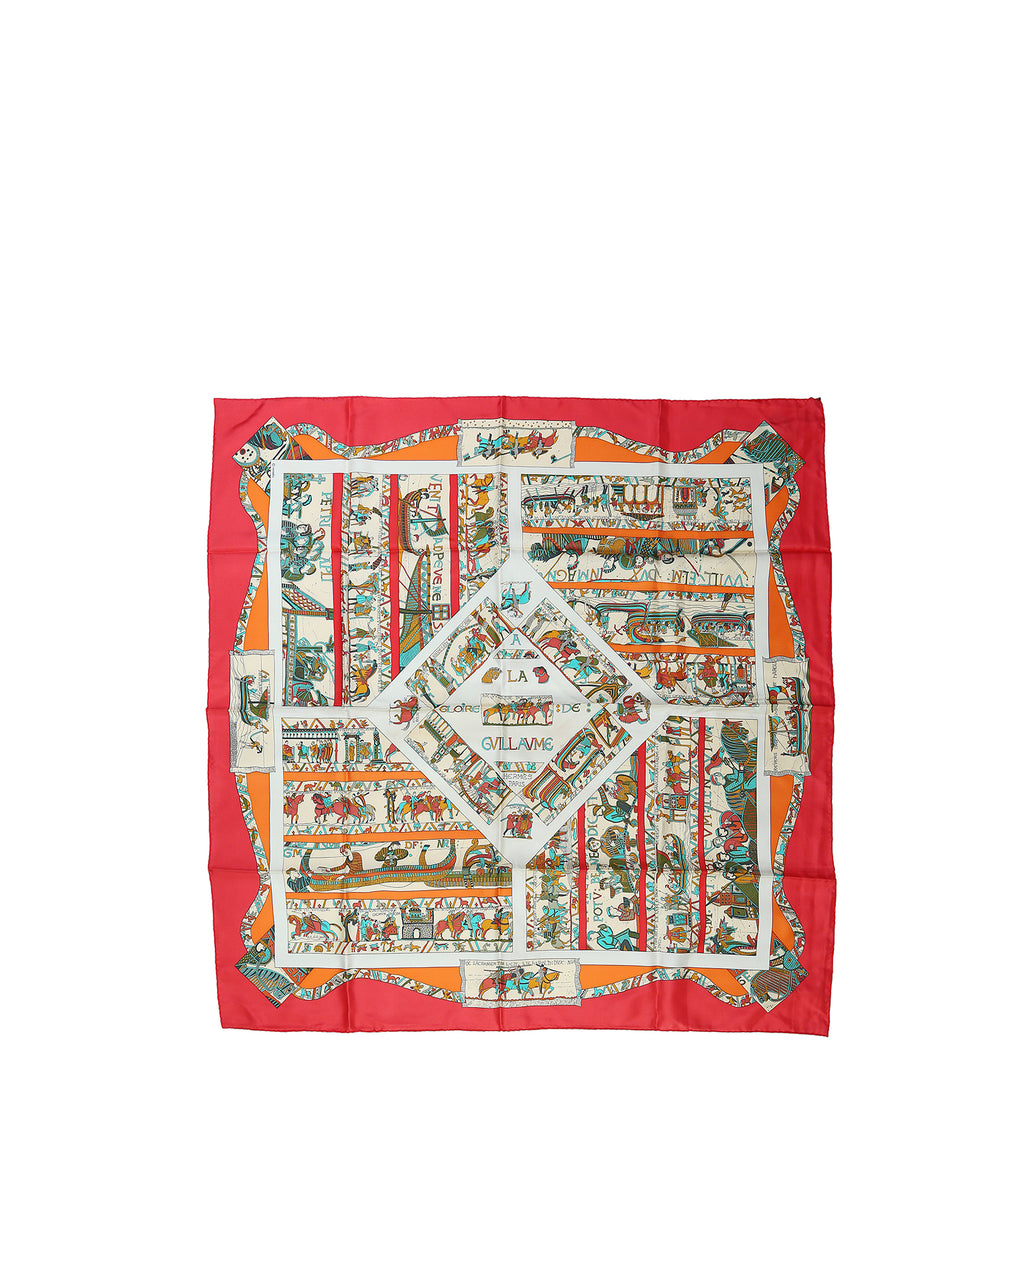 Hermès Vintage (1992 collection) Silk Scarf